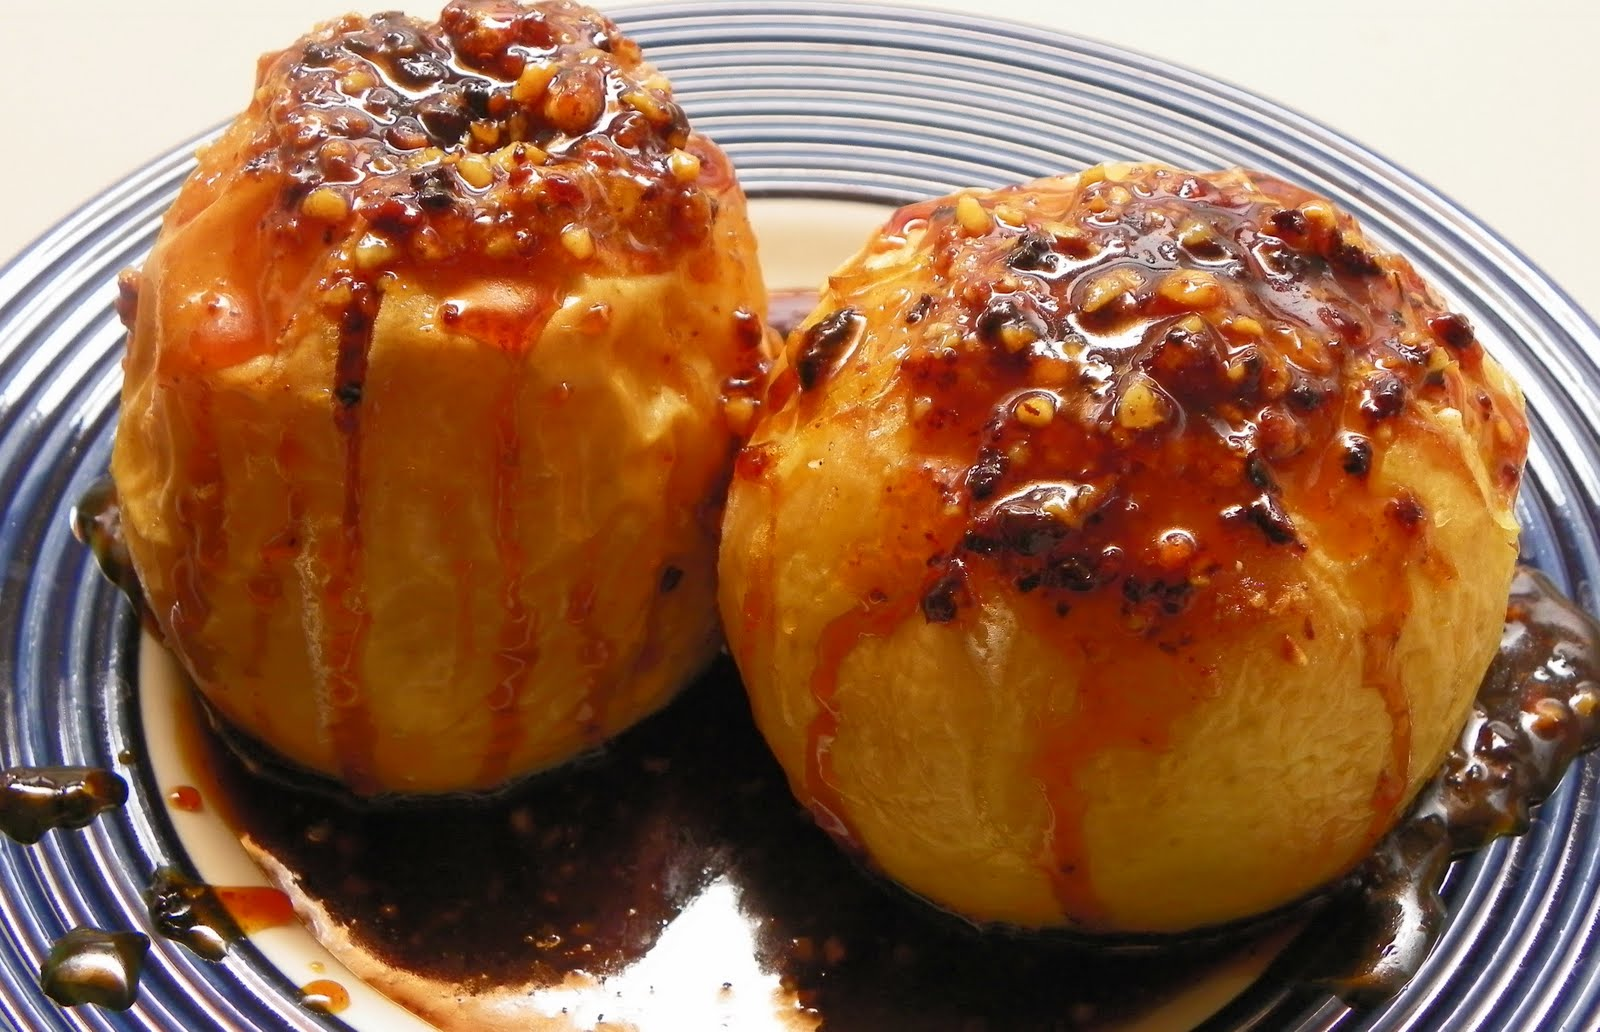 walnuts oatmeal brown sugar baked apples baked apples stuffed with ...